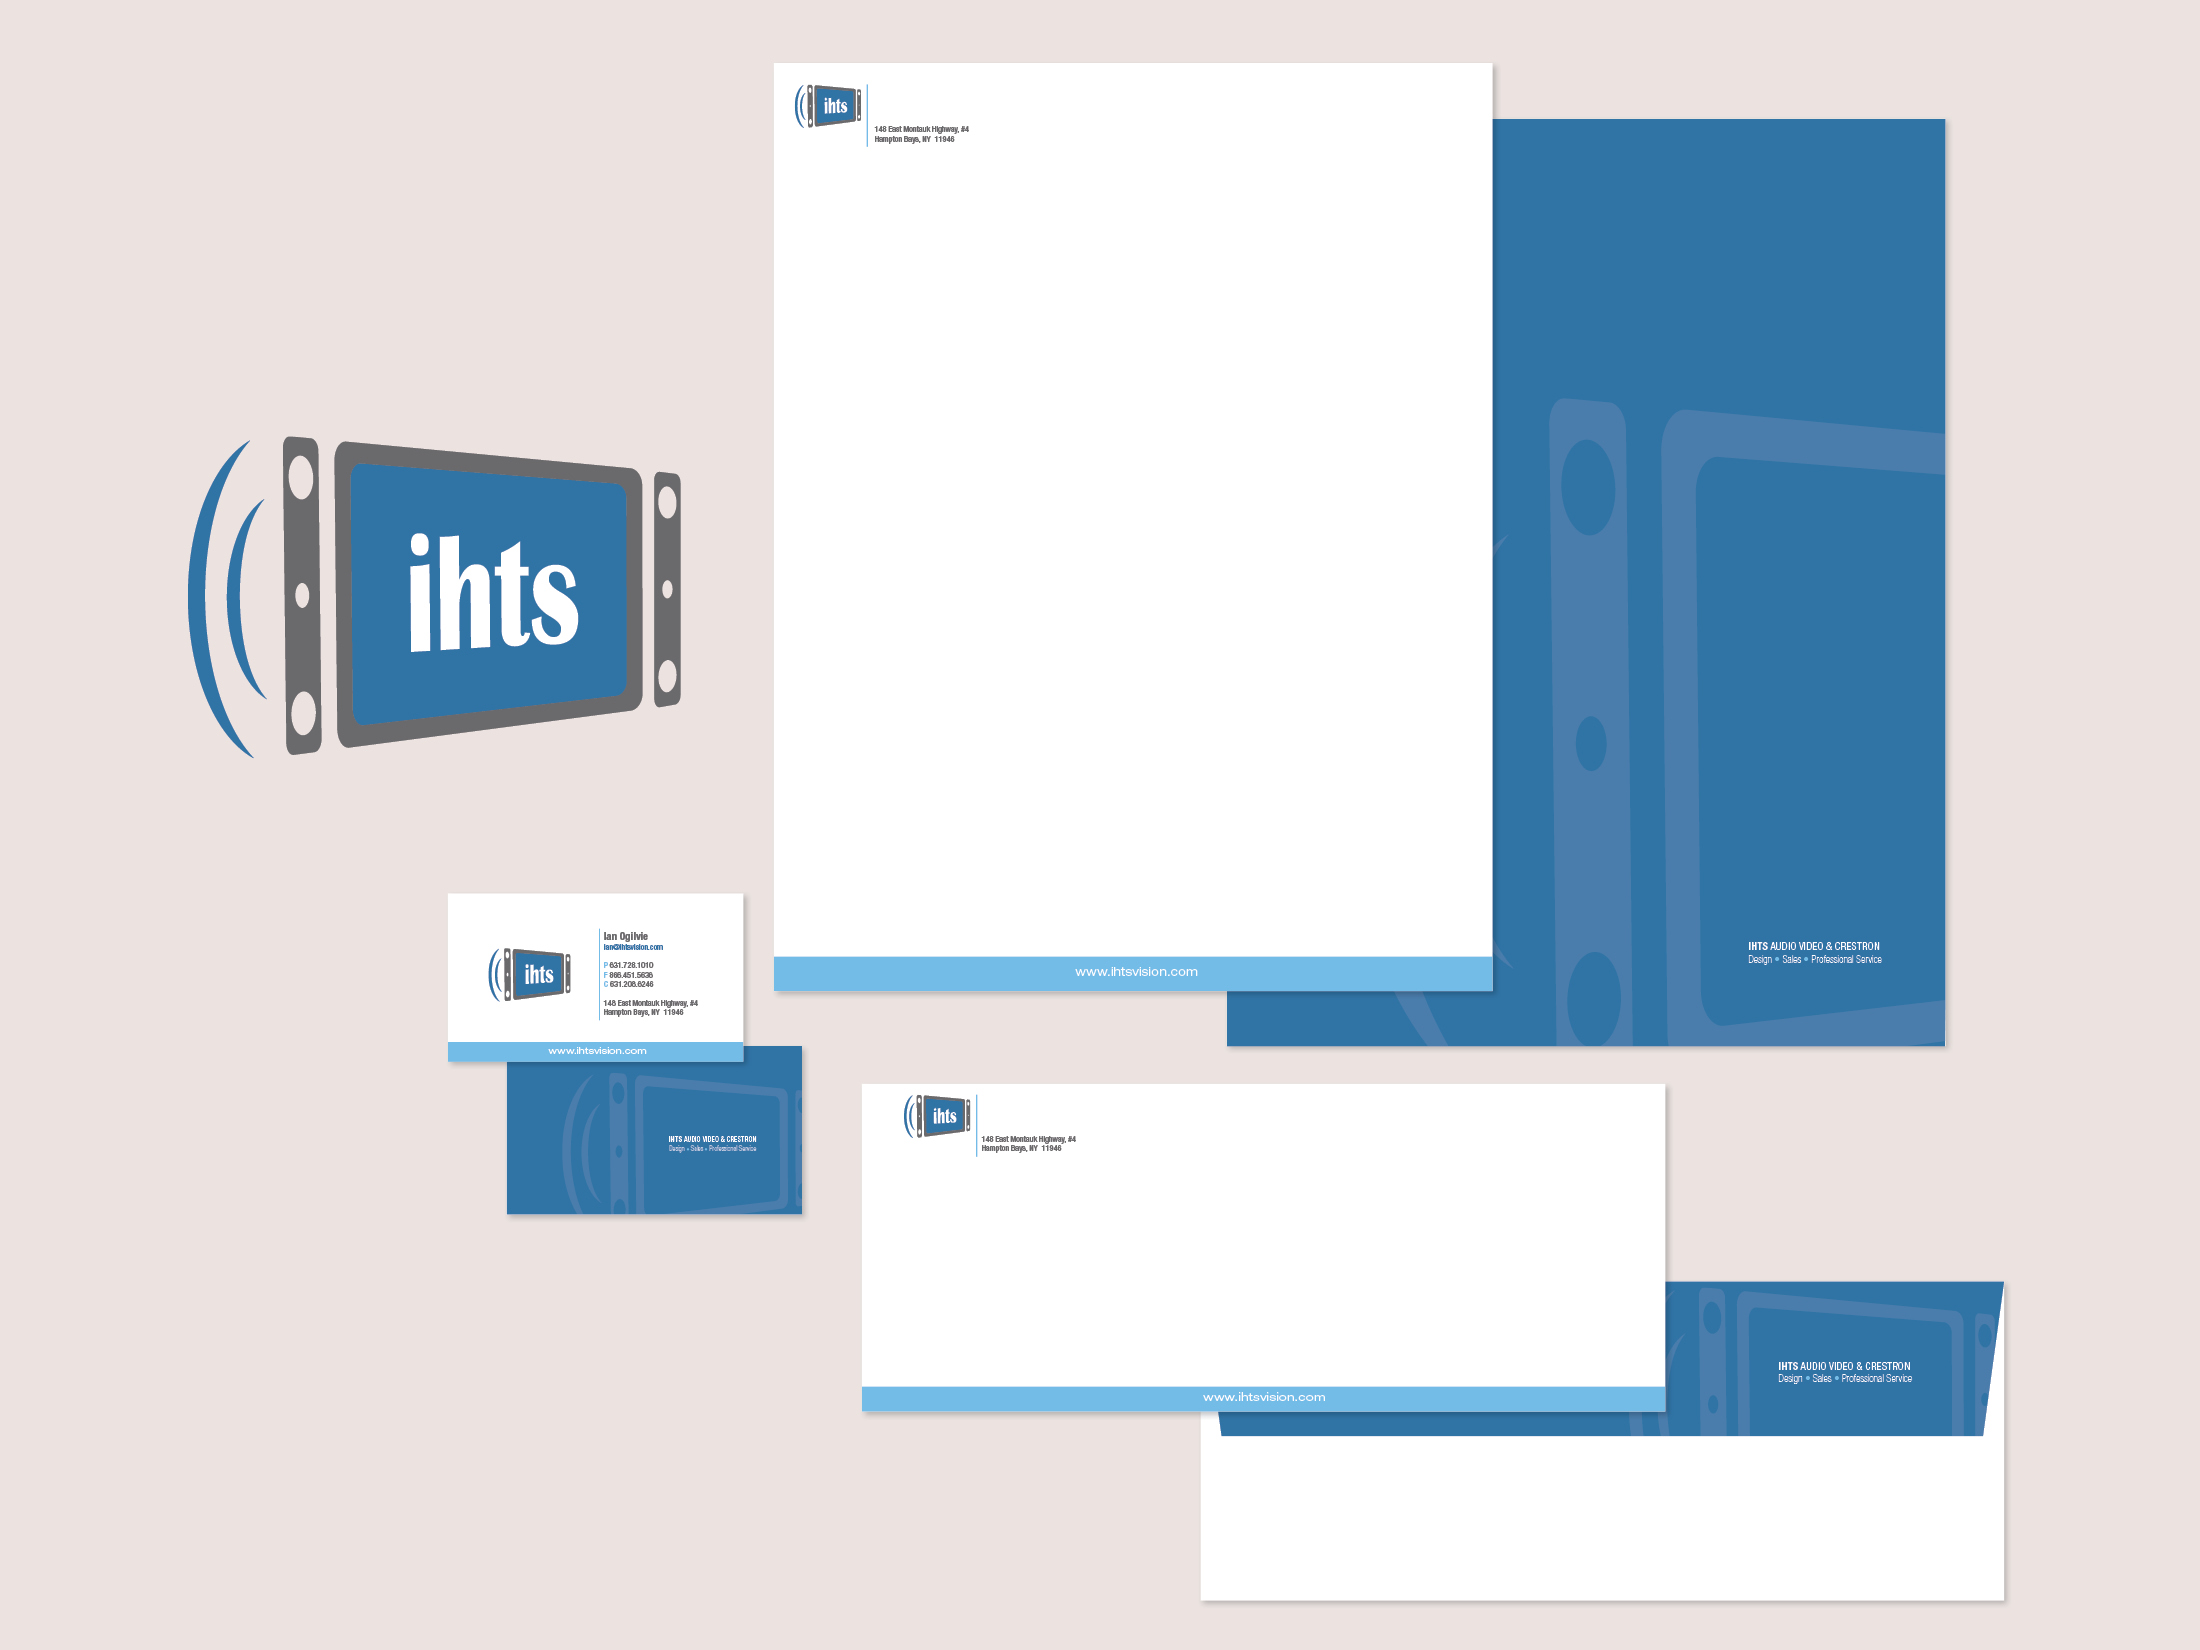 IHTS Identity Suite